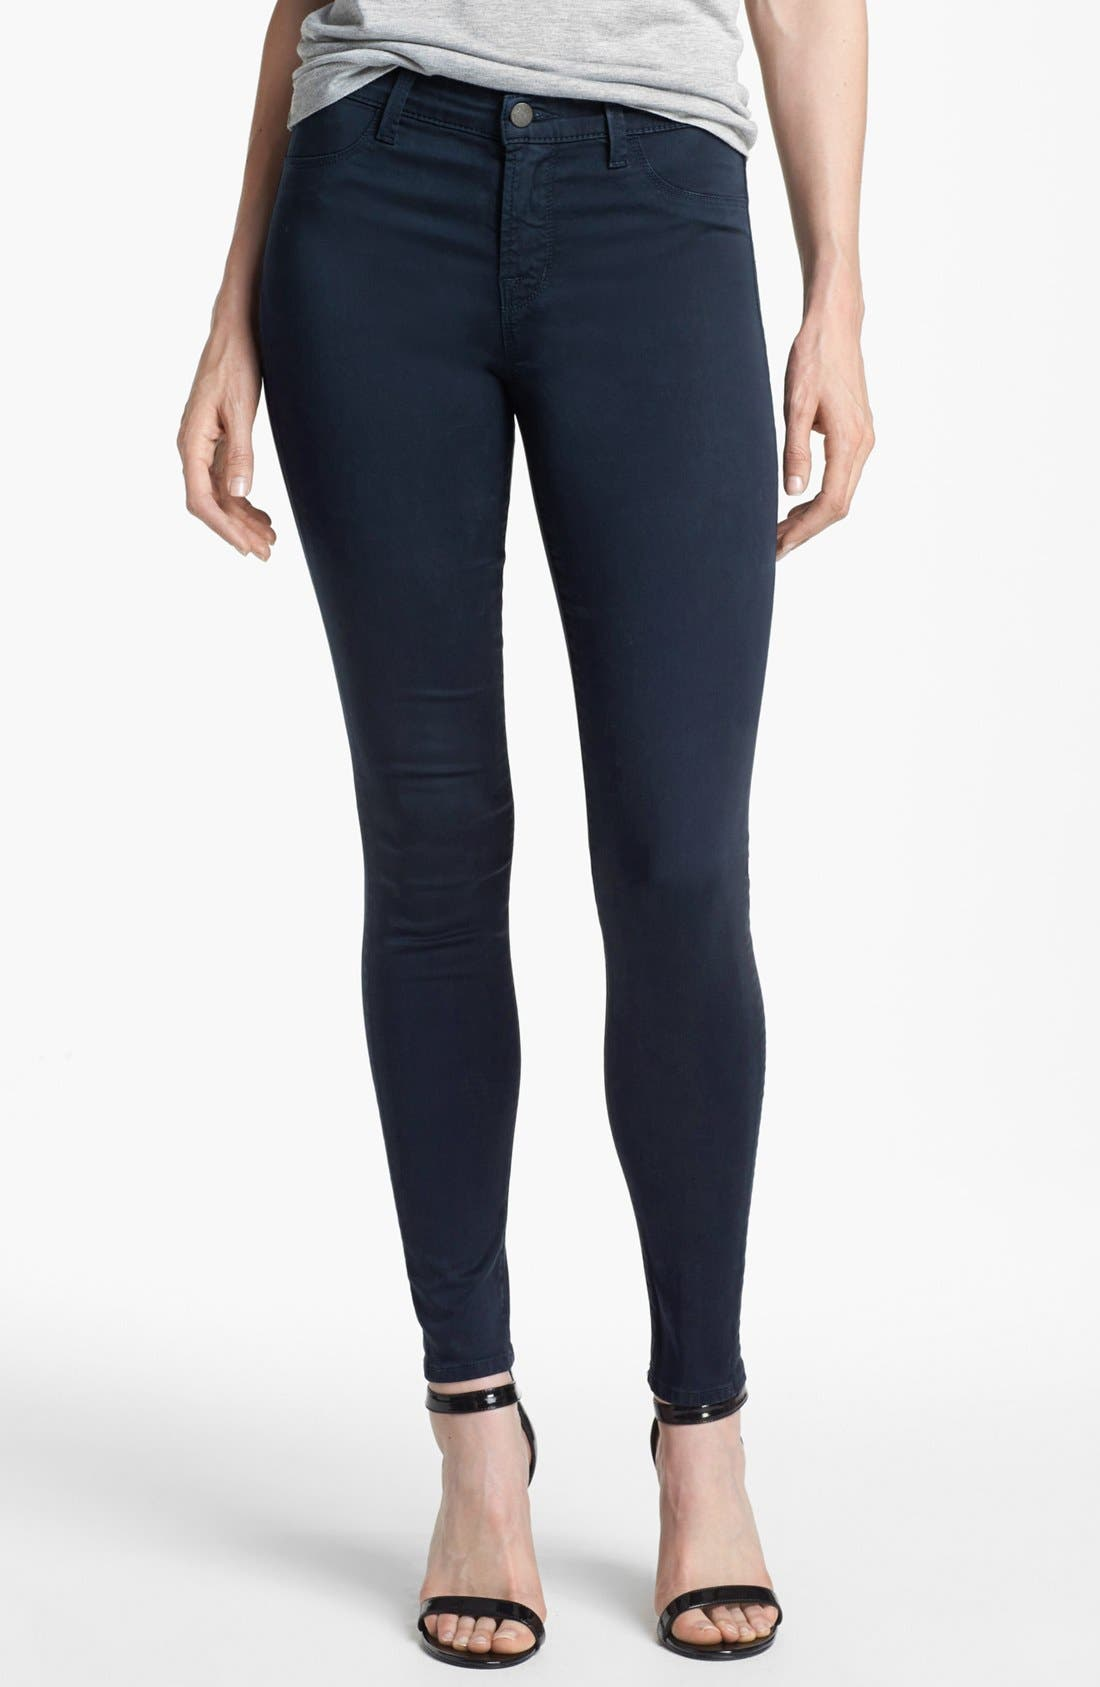 Main Image - J Brand '485' Mid Rise Super Skinny Jeans (Carbon Blue)